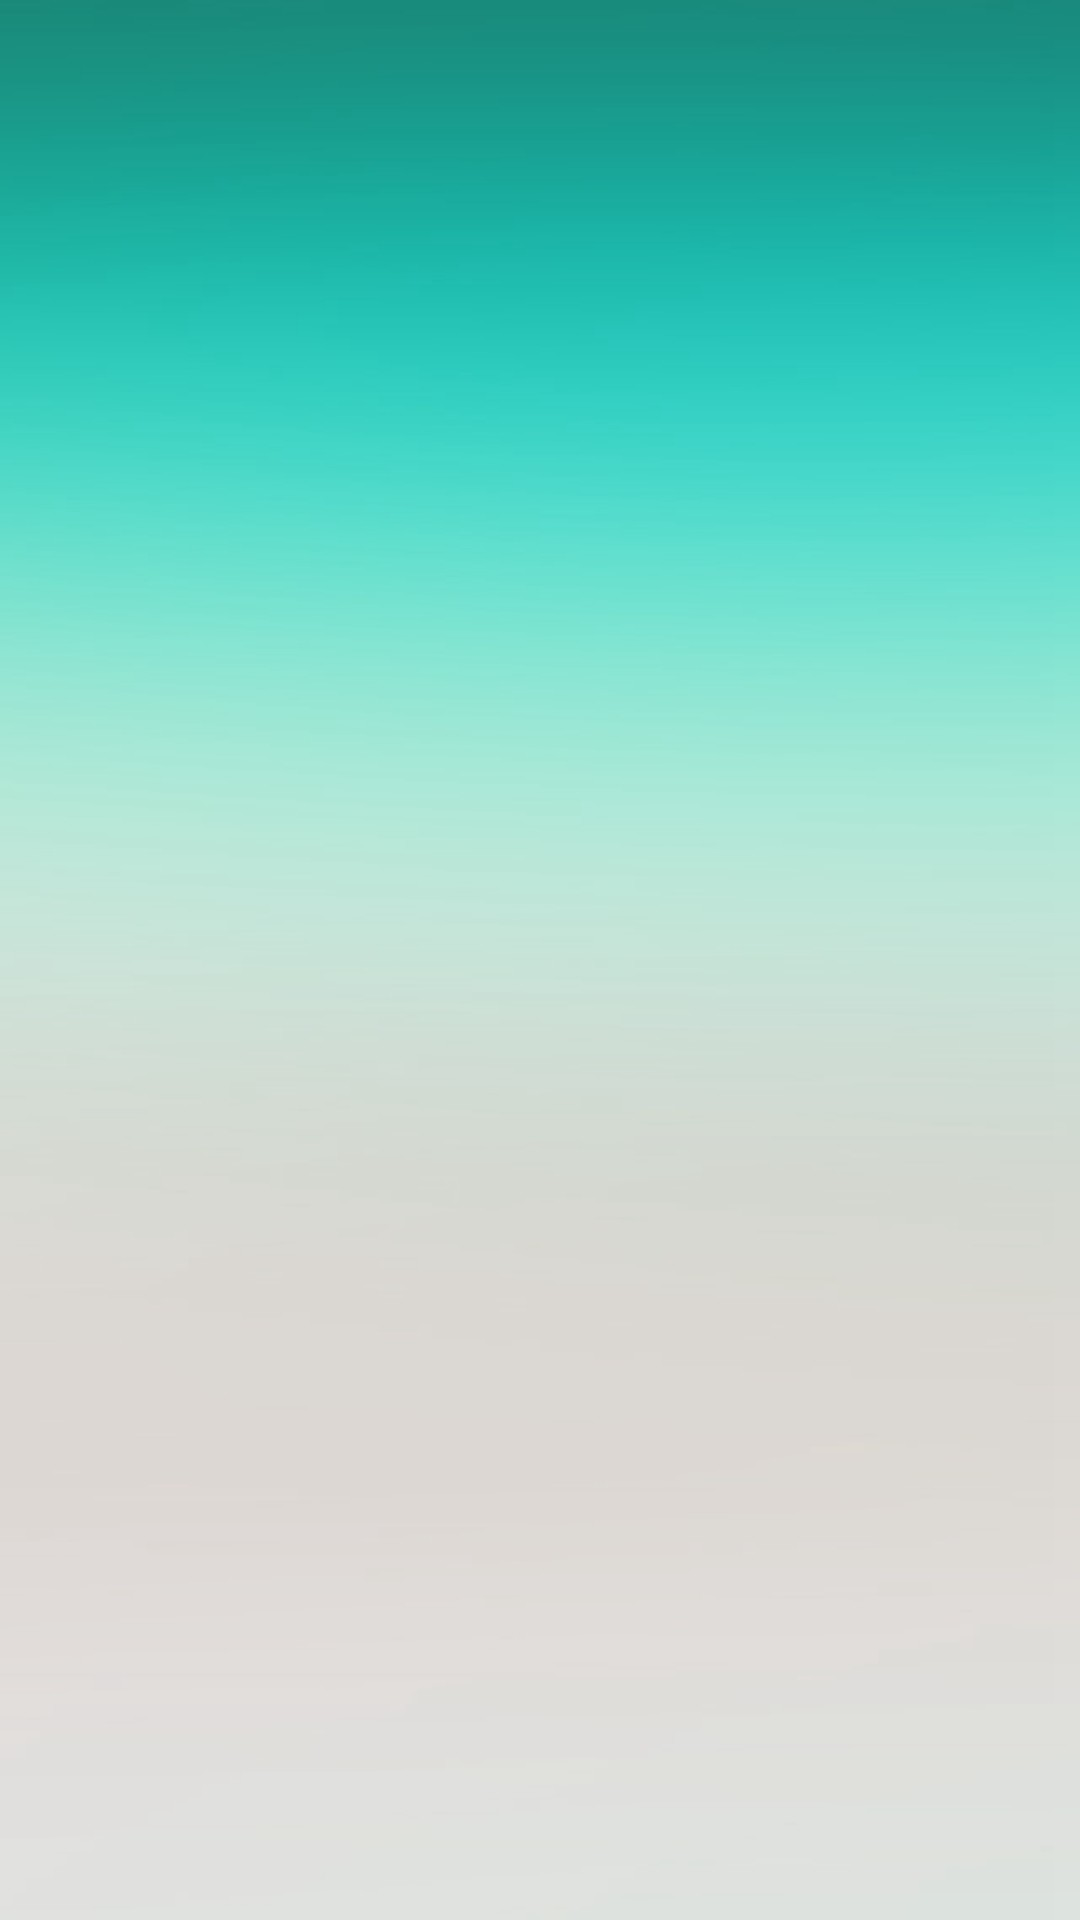 1080x1920 Sky Green Clear White Gradation Blur iPhone 6 wallpaper